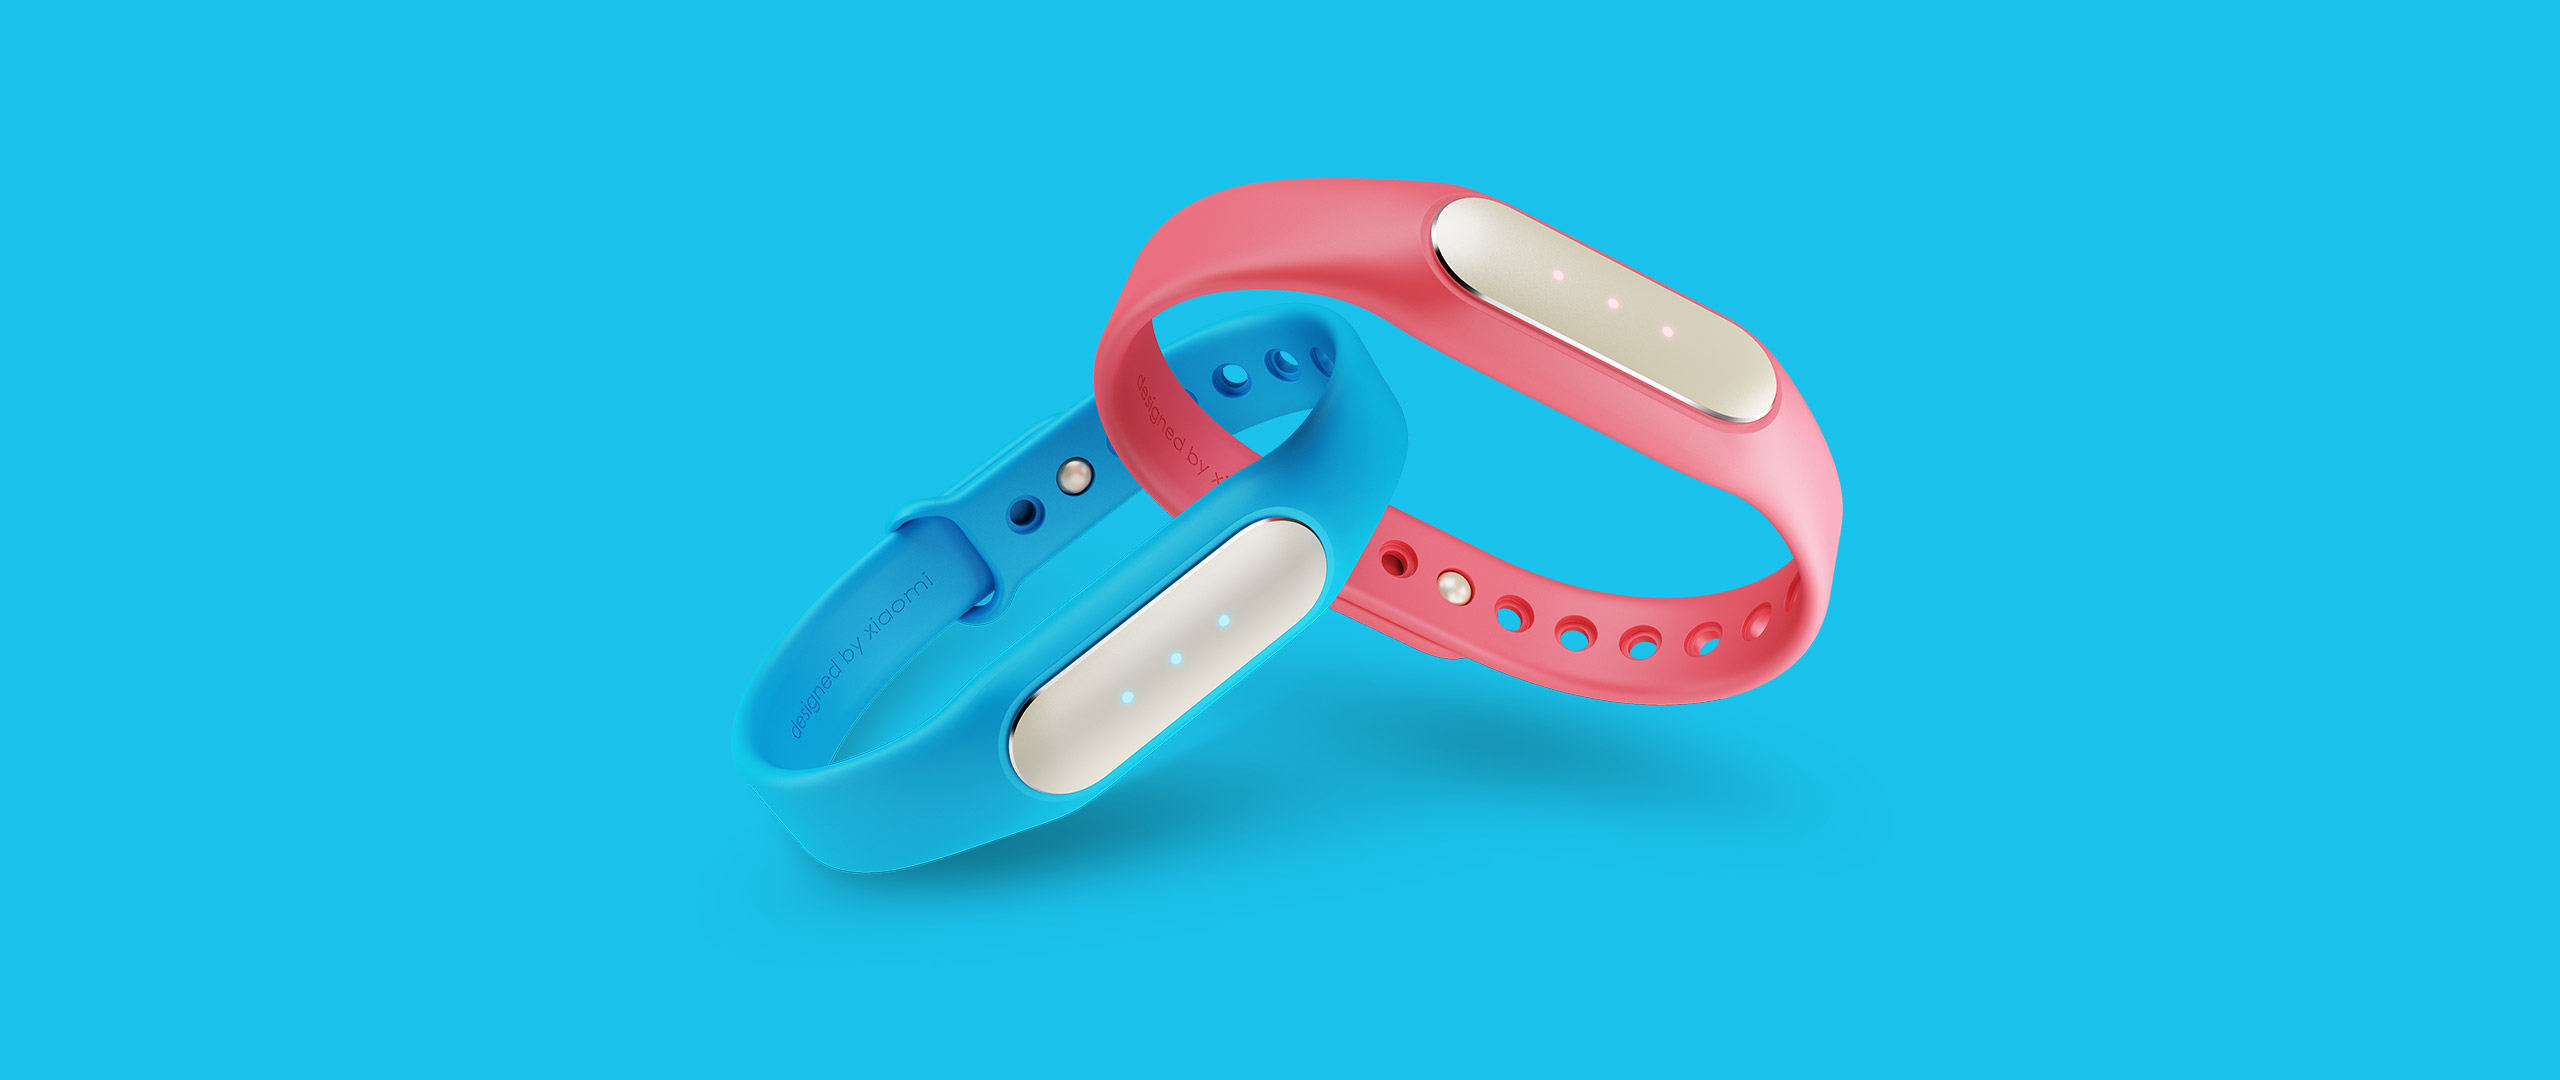 Buy Xiaomi Mi Fitness Band Online Malaysia 2 Original Smart Bracelet Tested To Be Tougher